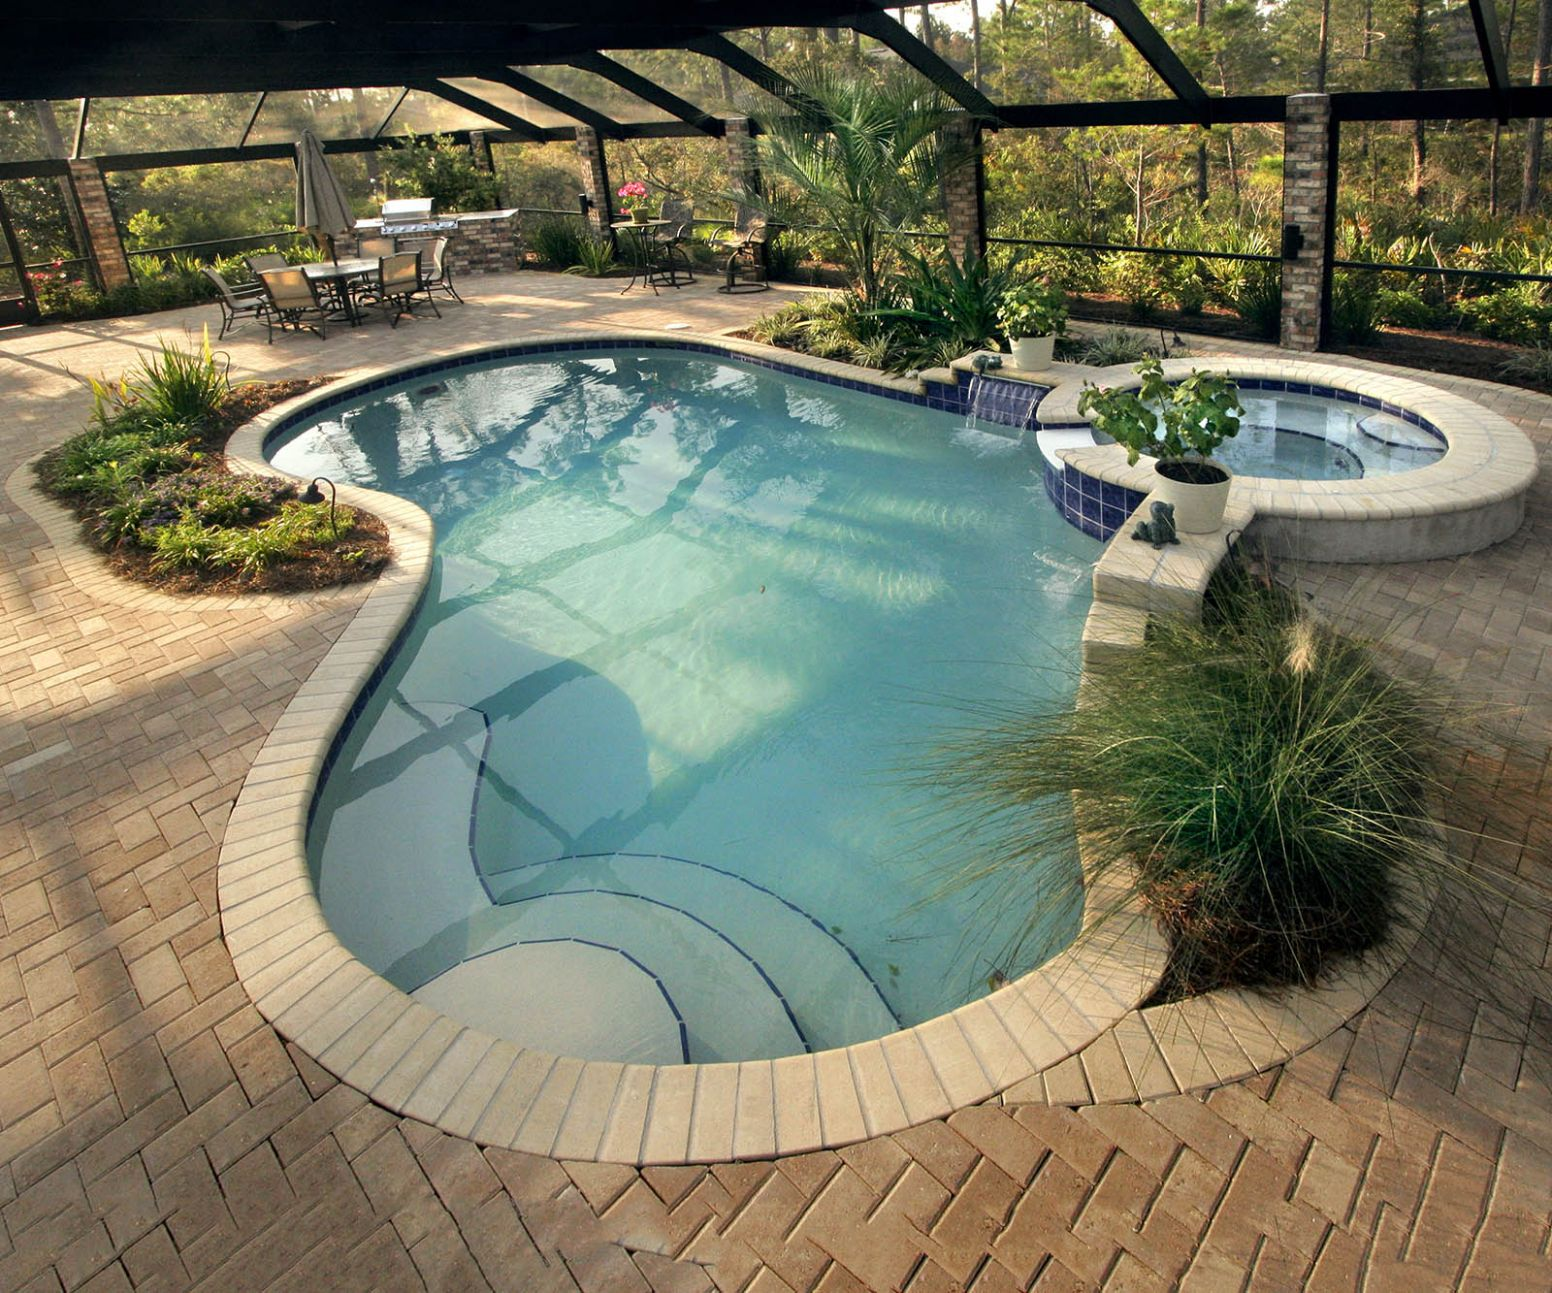 Top Inground Pool Renovation Ideas About Remodel Inspiration ..